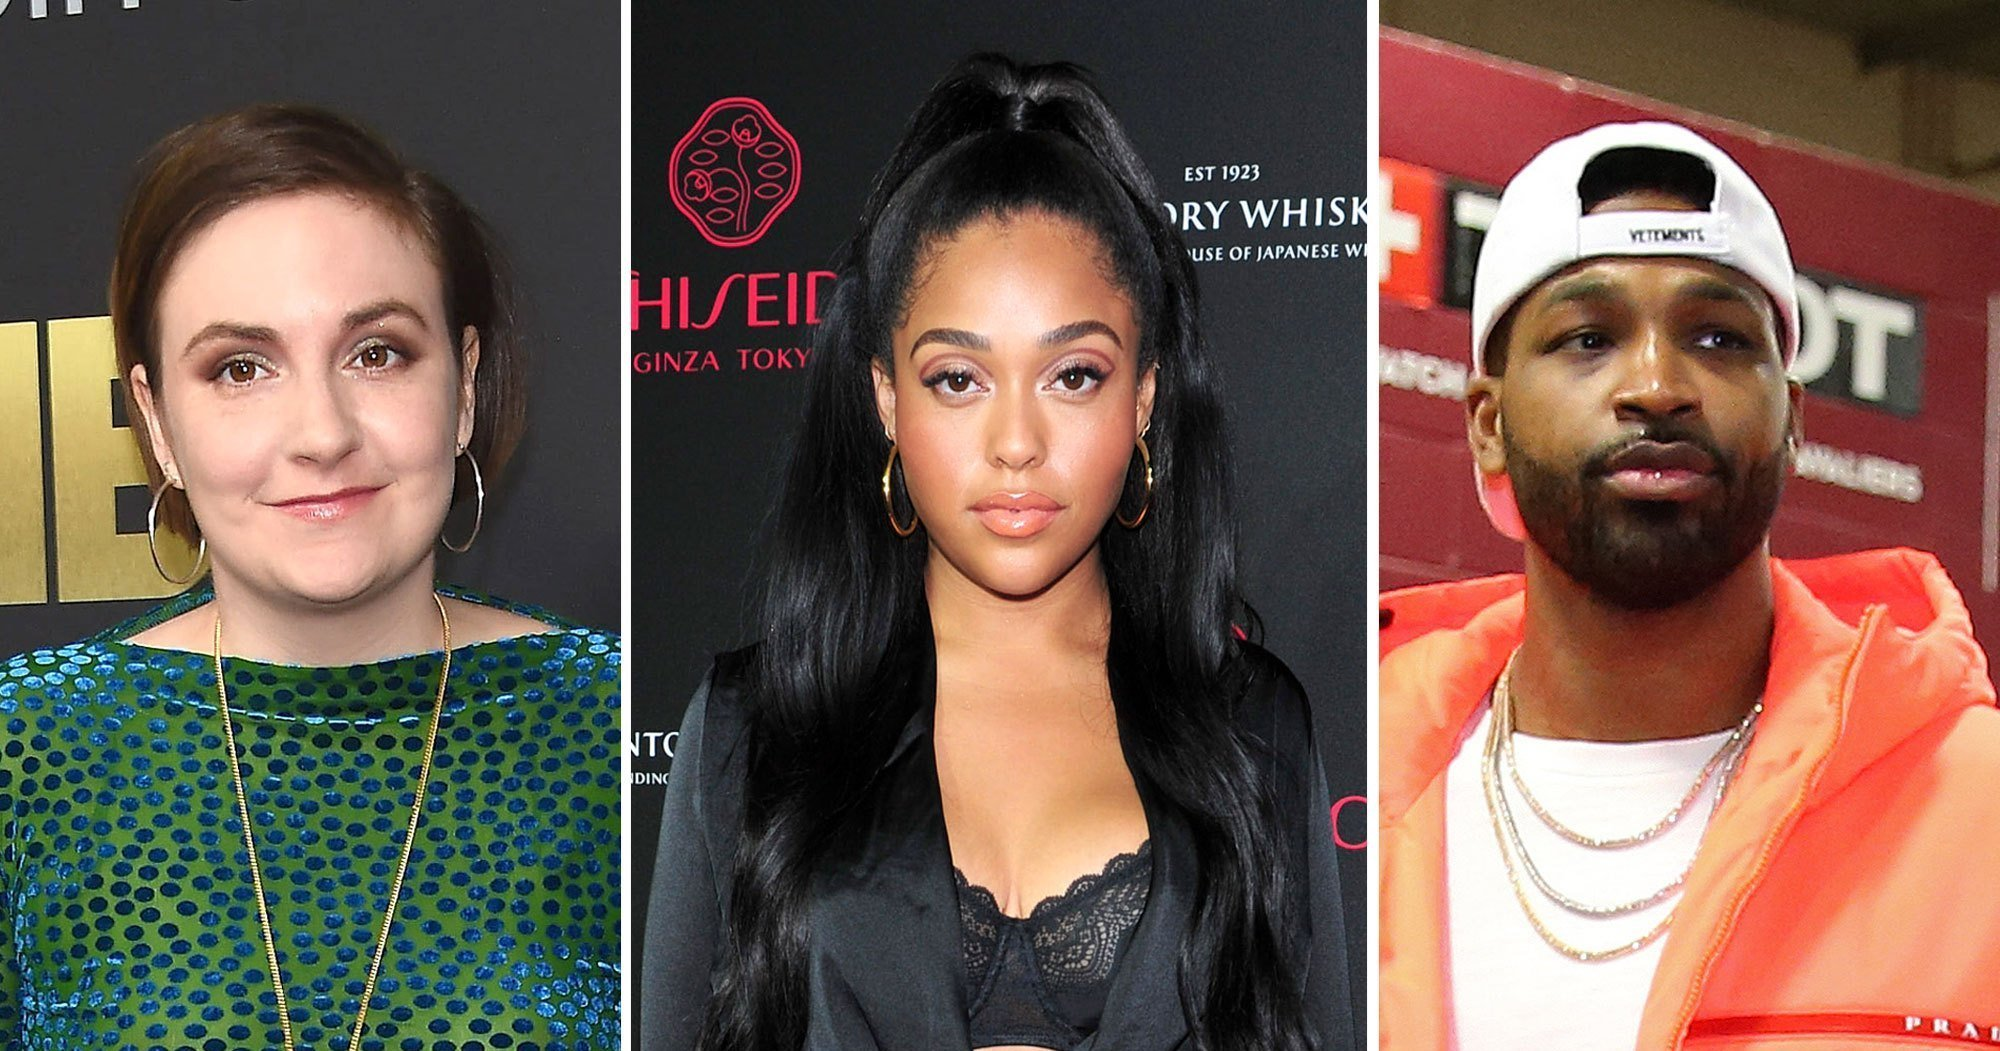 Lena Dunham Defends Jordyn Woods Amid Tristan Thompson Cheating Scandal